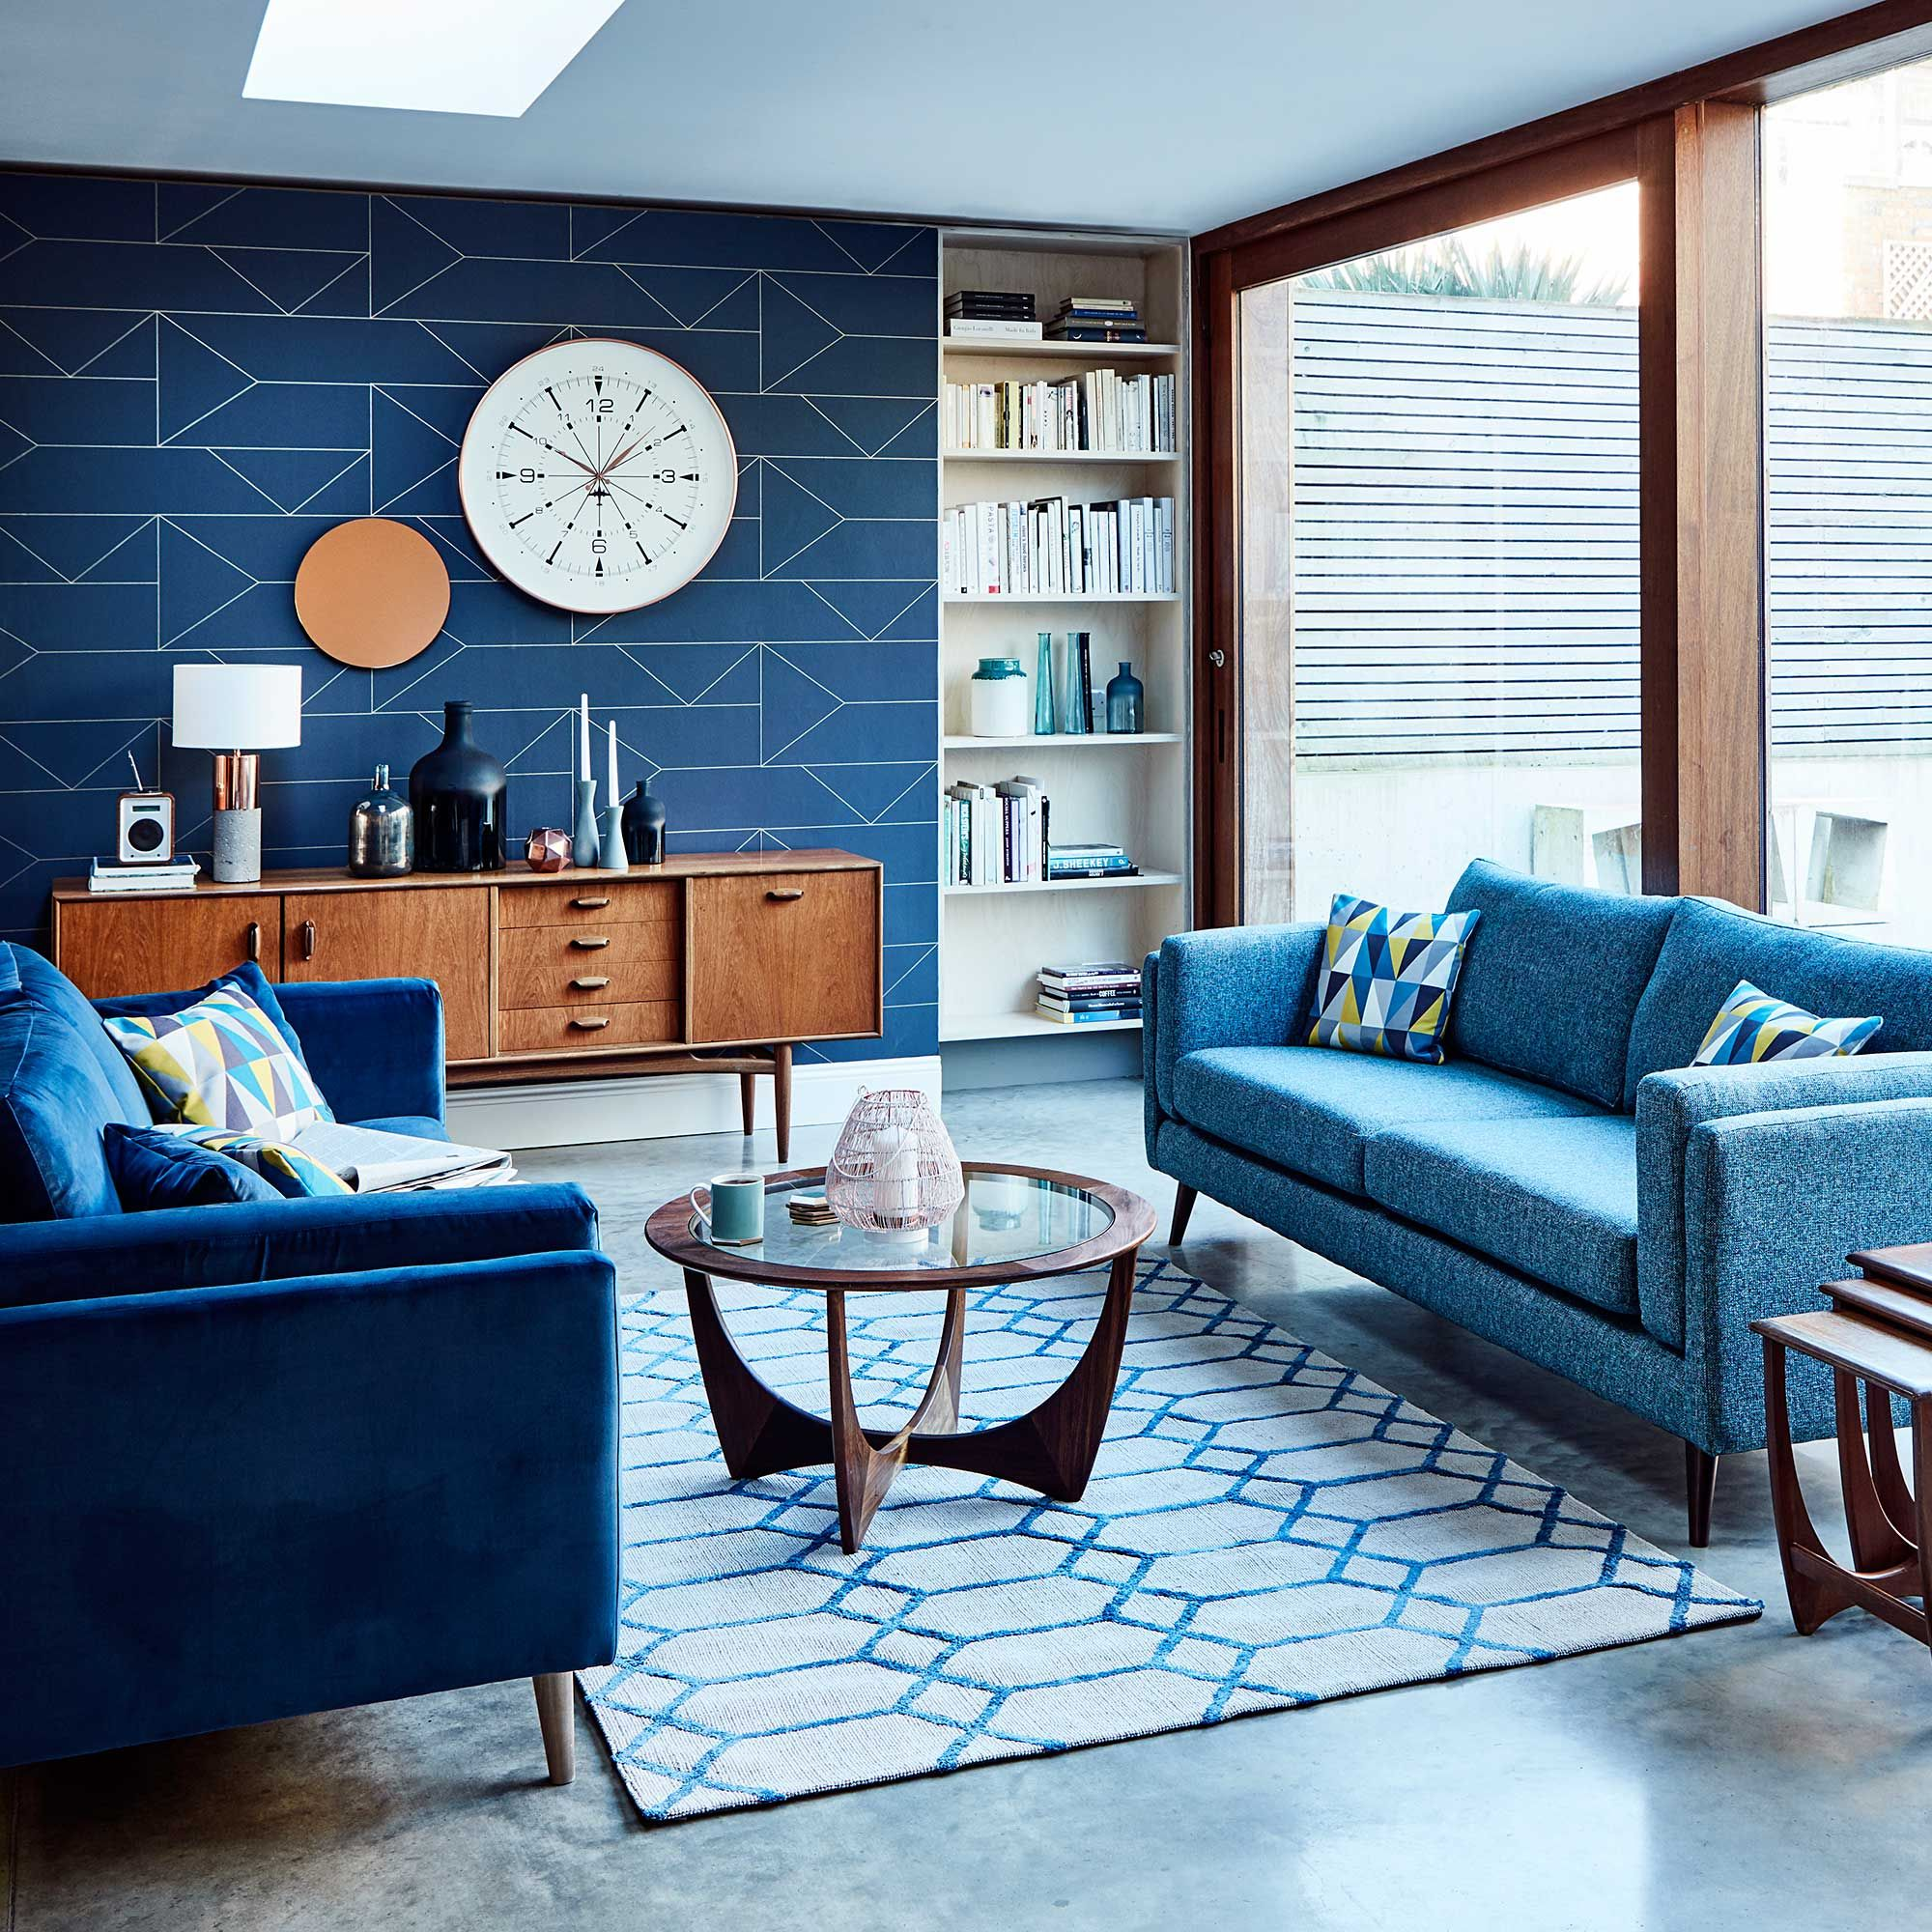 Juni Large Sofa Available Online At Barker Stonehouse Browse Our Fabulous Range Today Blue Couch Living Room Living Room Sofa Living Room Color Schemes